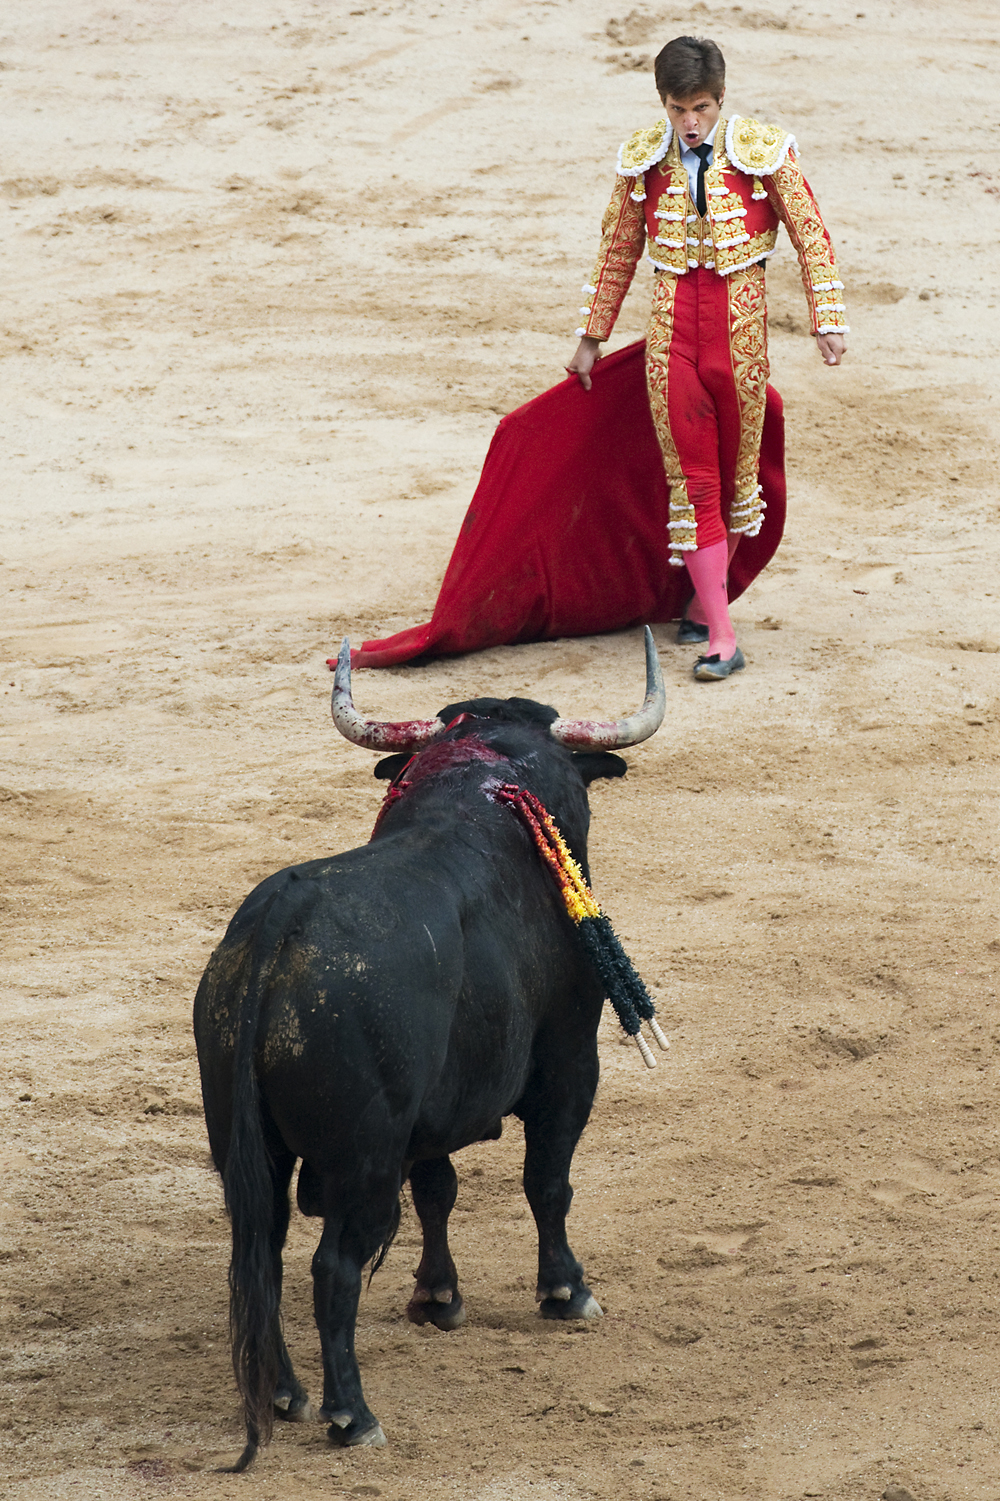 The matador and wounded bull face each other during the final act of a bullfight called  Tercio de Muerte  in Pamplona's Plaza de Toros, Spain, on Thursday, July 11, 2013. A bullfight occurs every evening throughout the week long festival of San Fermin.